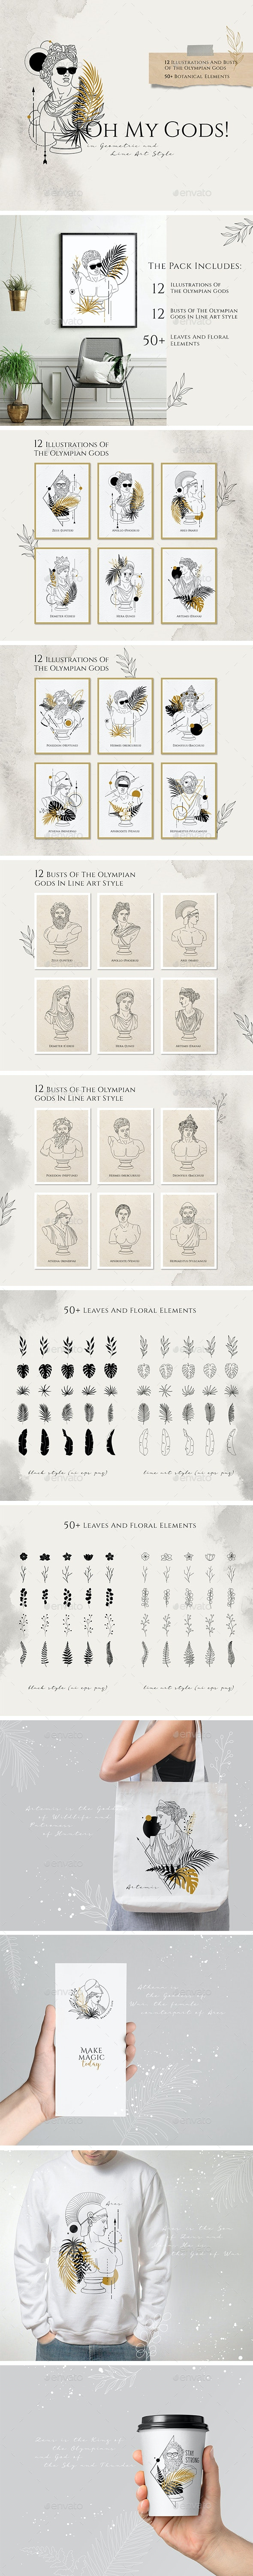 Oh My Gods! Olympian Gods In Line Art Style - Characters Illustrations